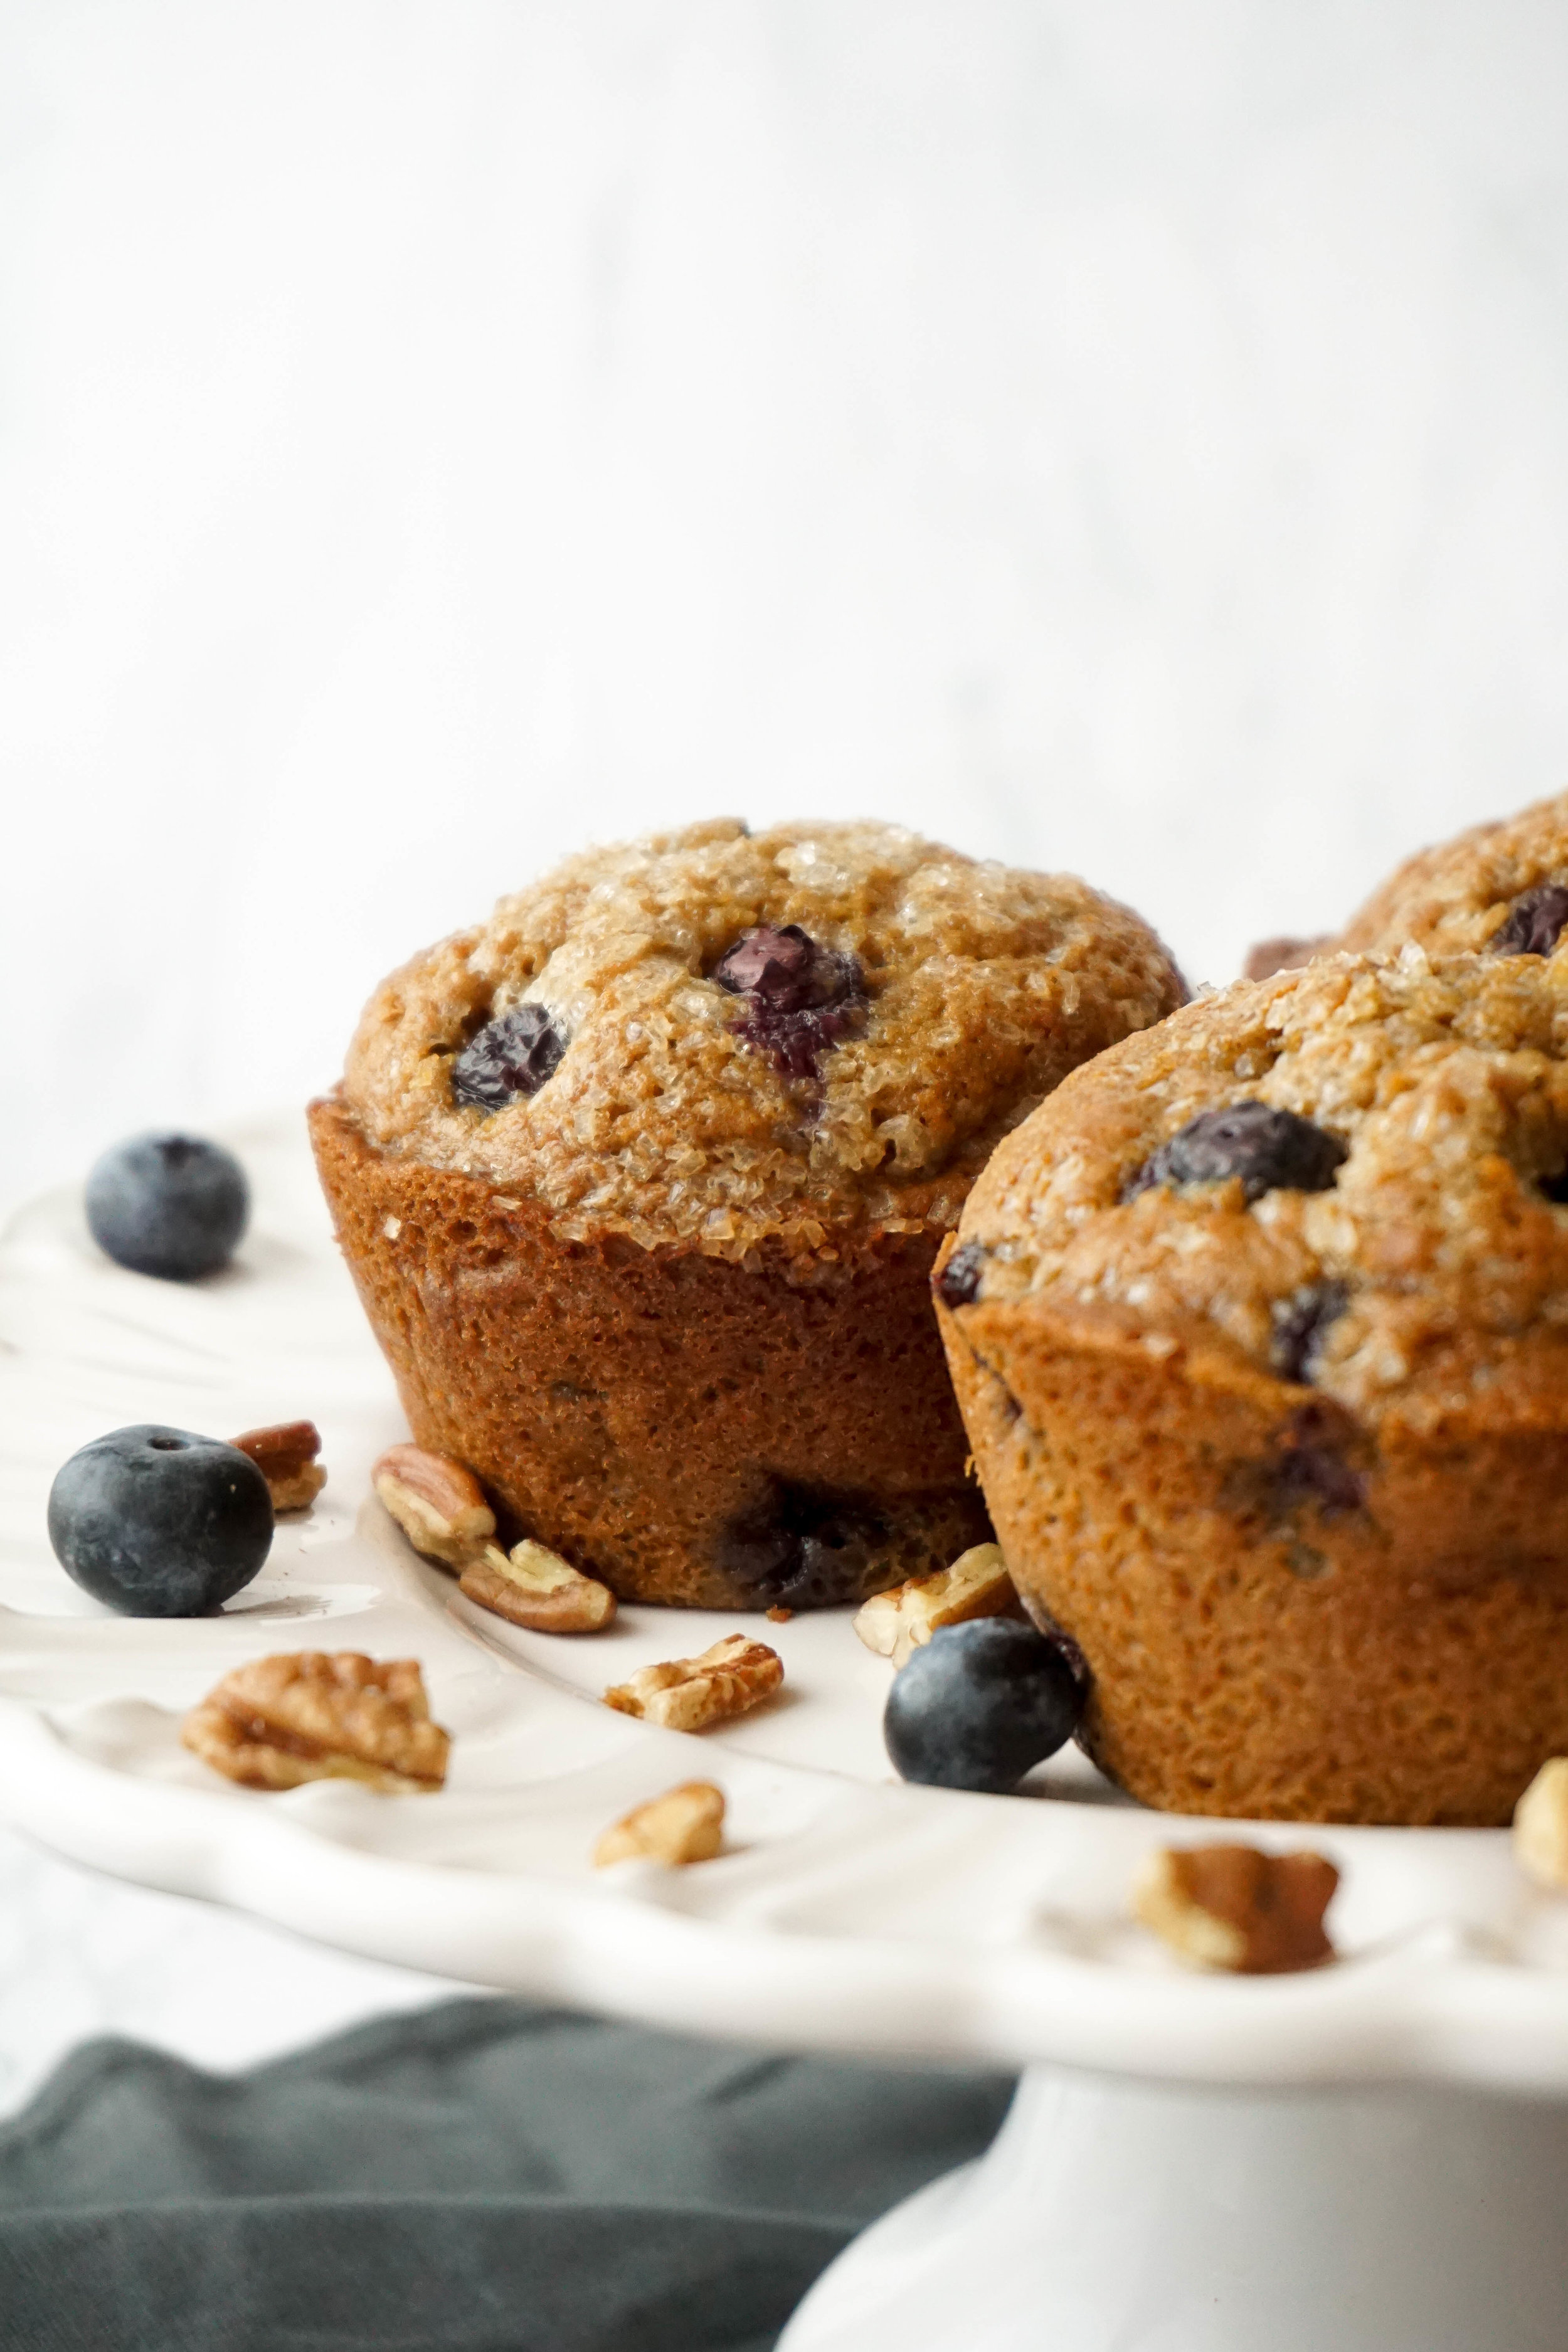 Whole-Wheat Bakery-Style Blueberry Pecan Muffins